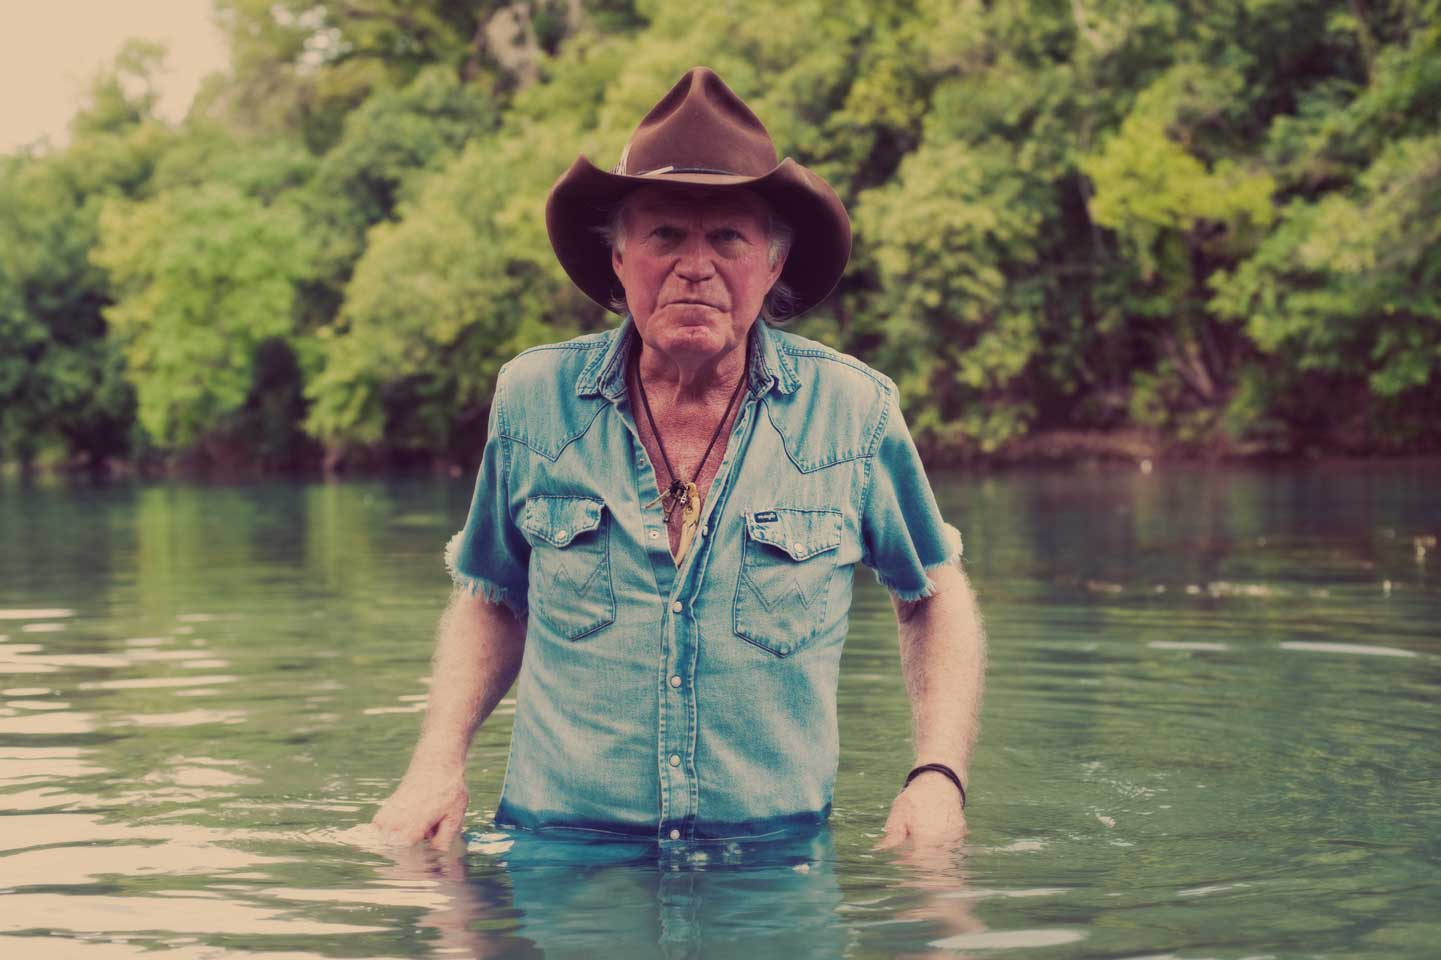 Billie Joe Shaver